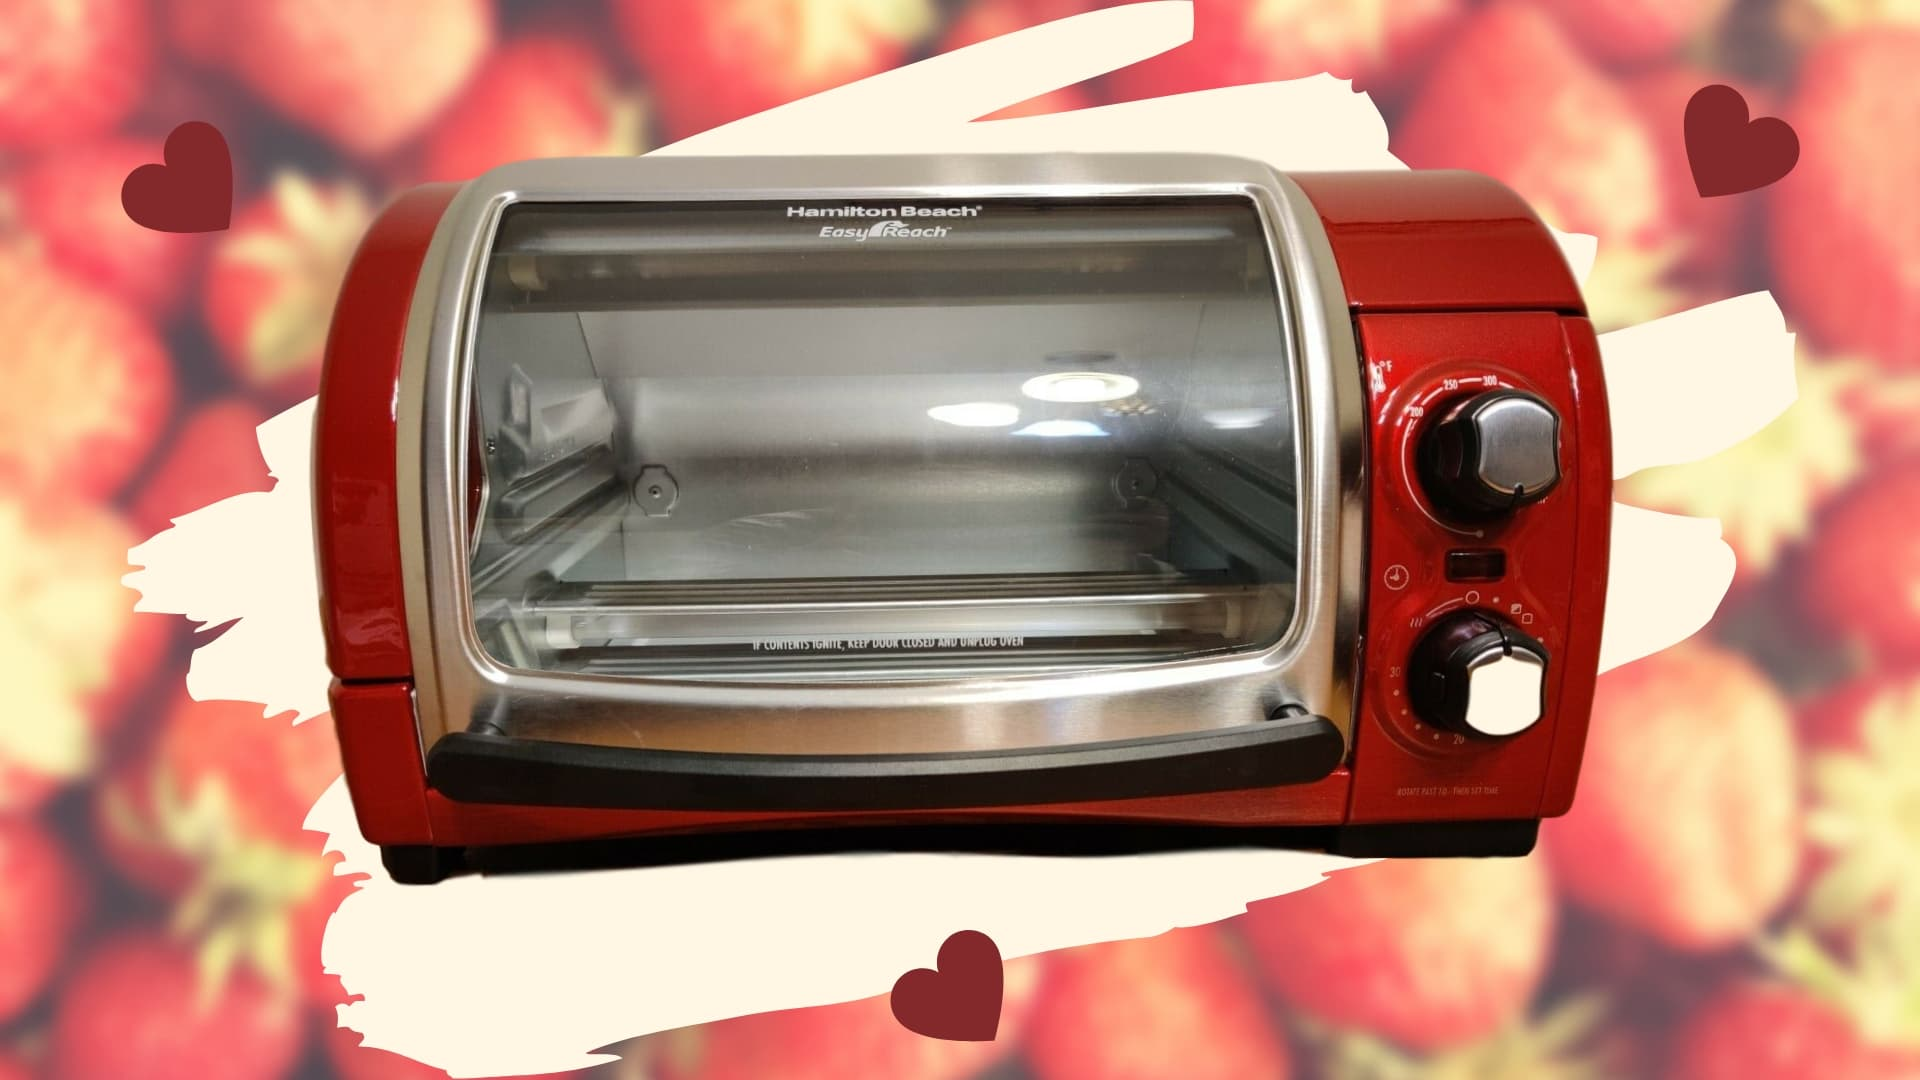 Featured image for Hamilton Beach Easy Reach 6-slice Toaster Oven Review